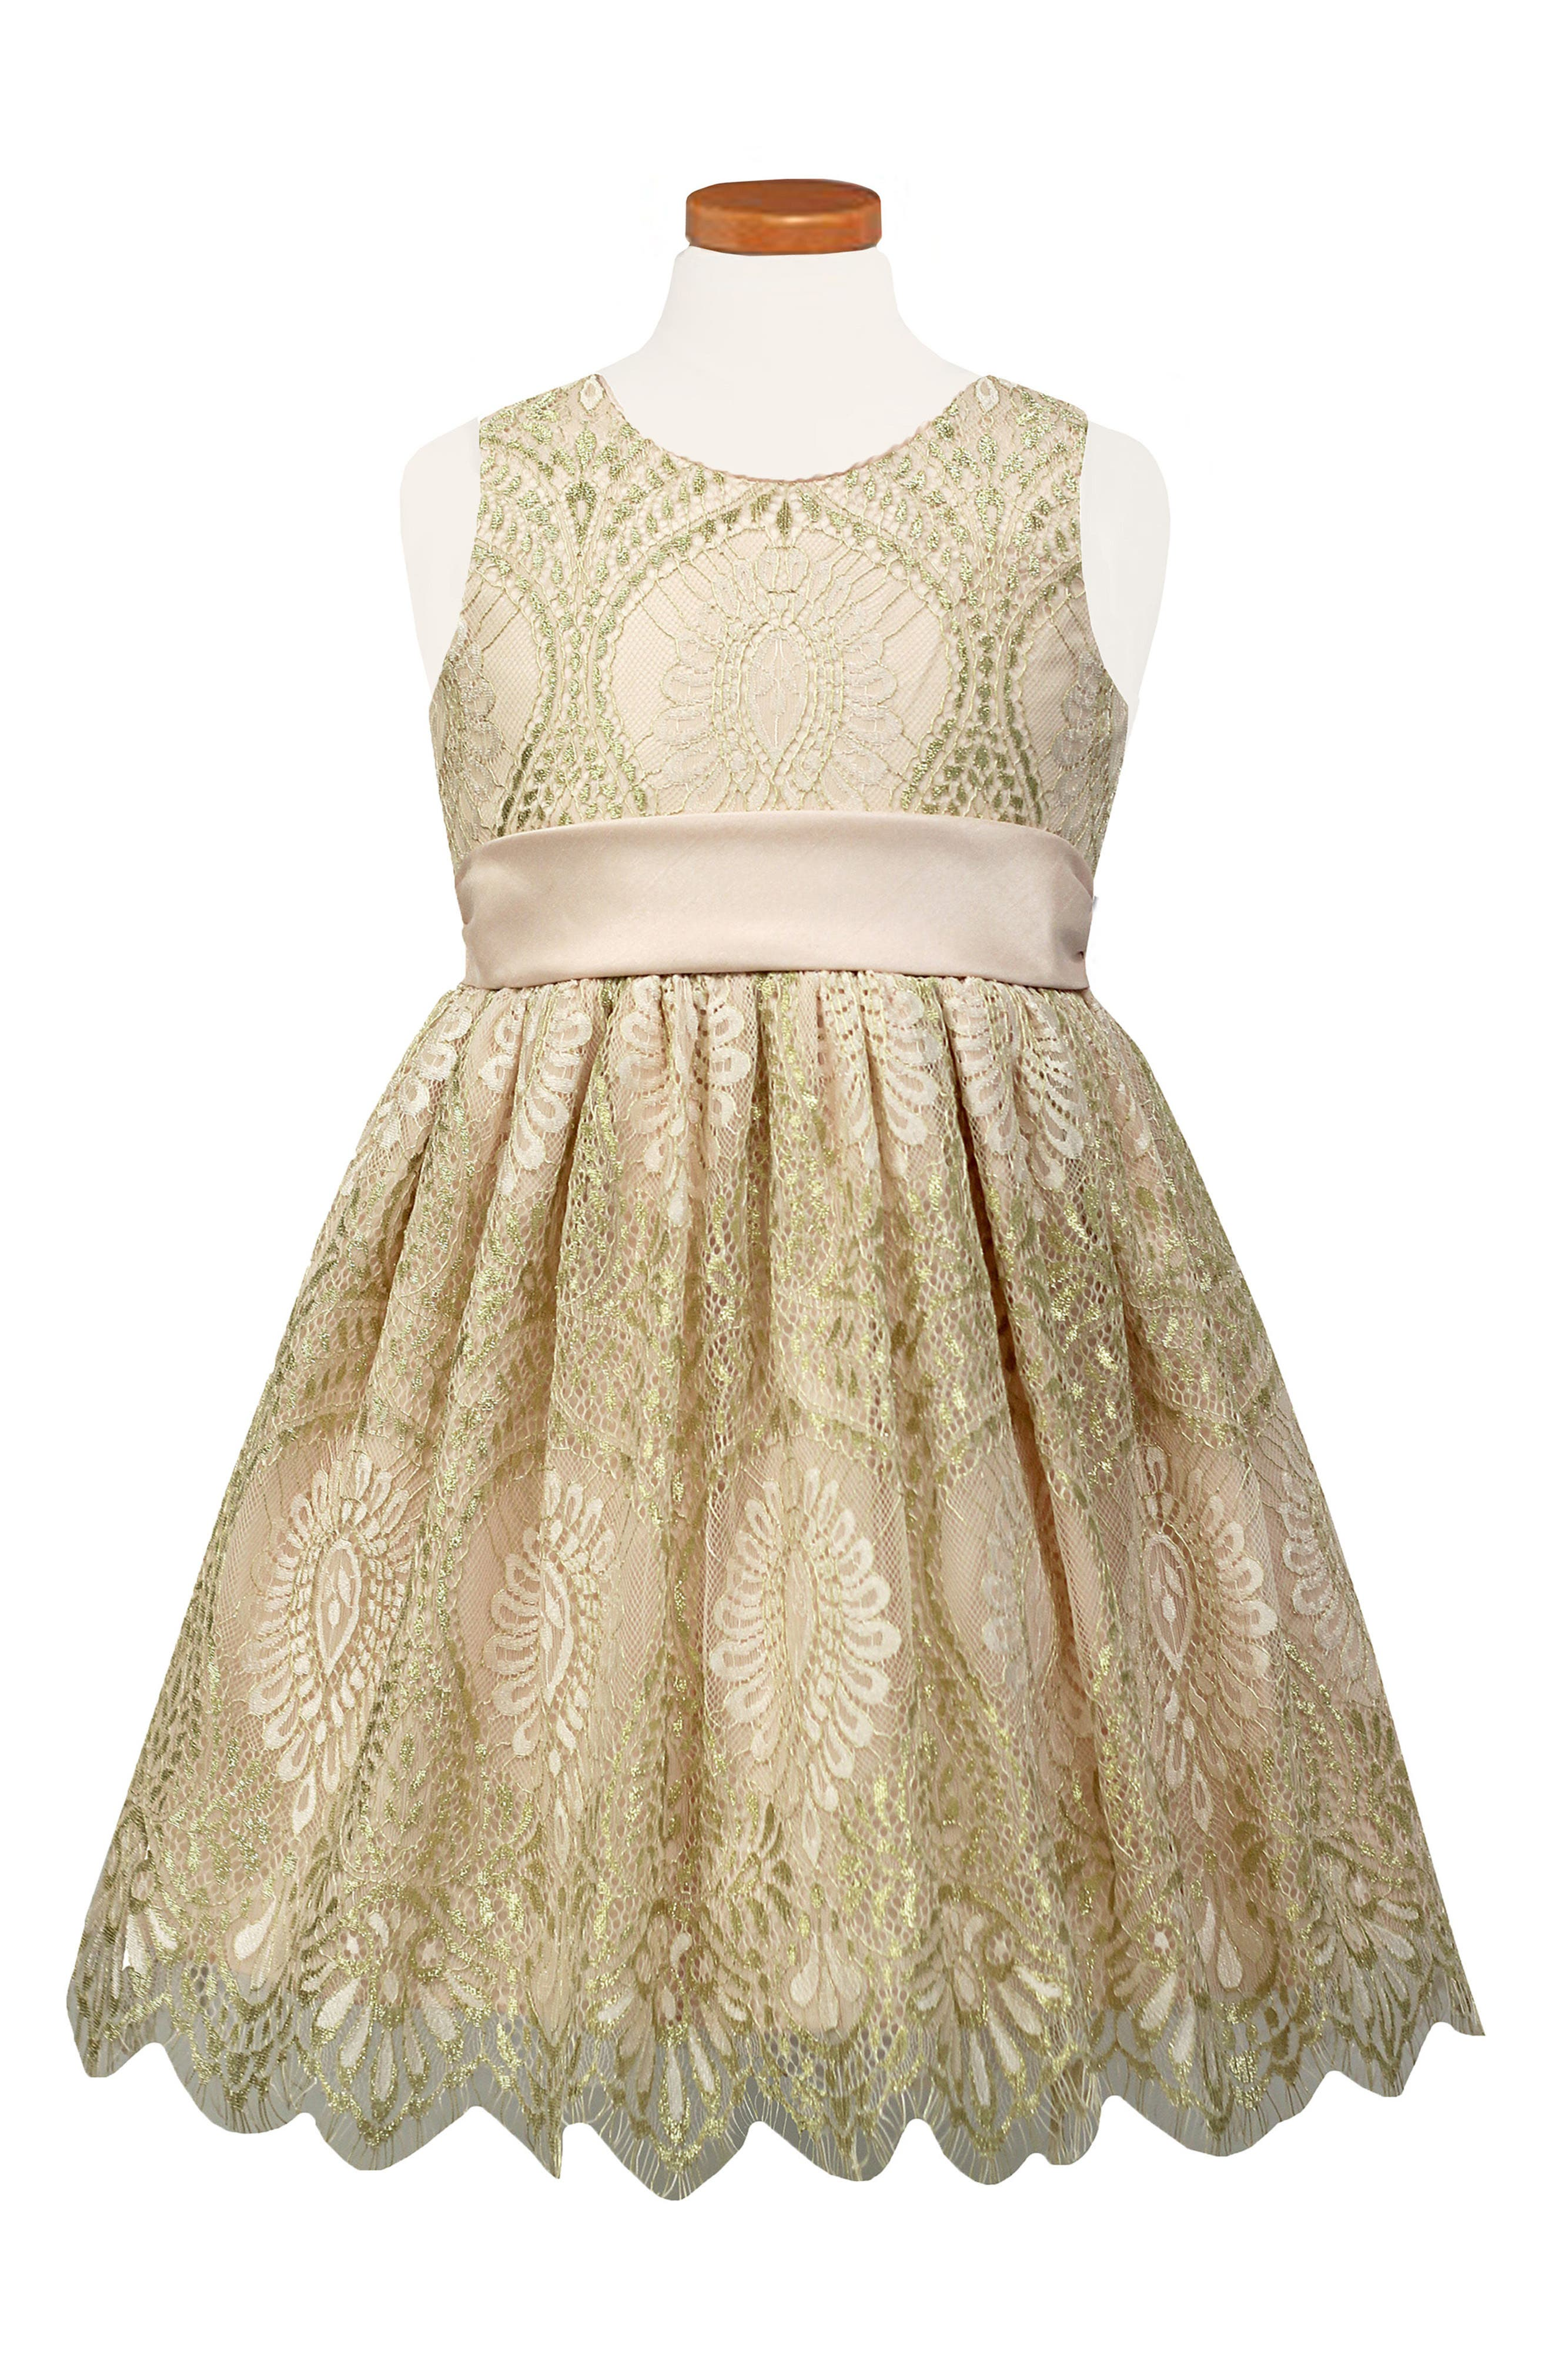 SORBET Lace Fit & Flare Dress, Main, color, PINK